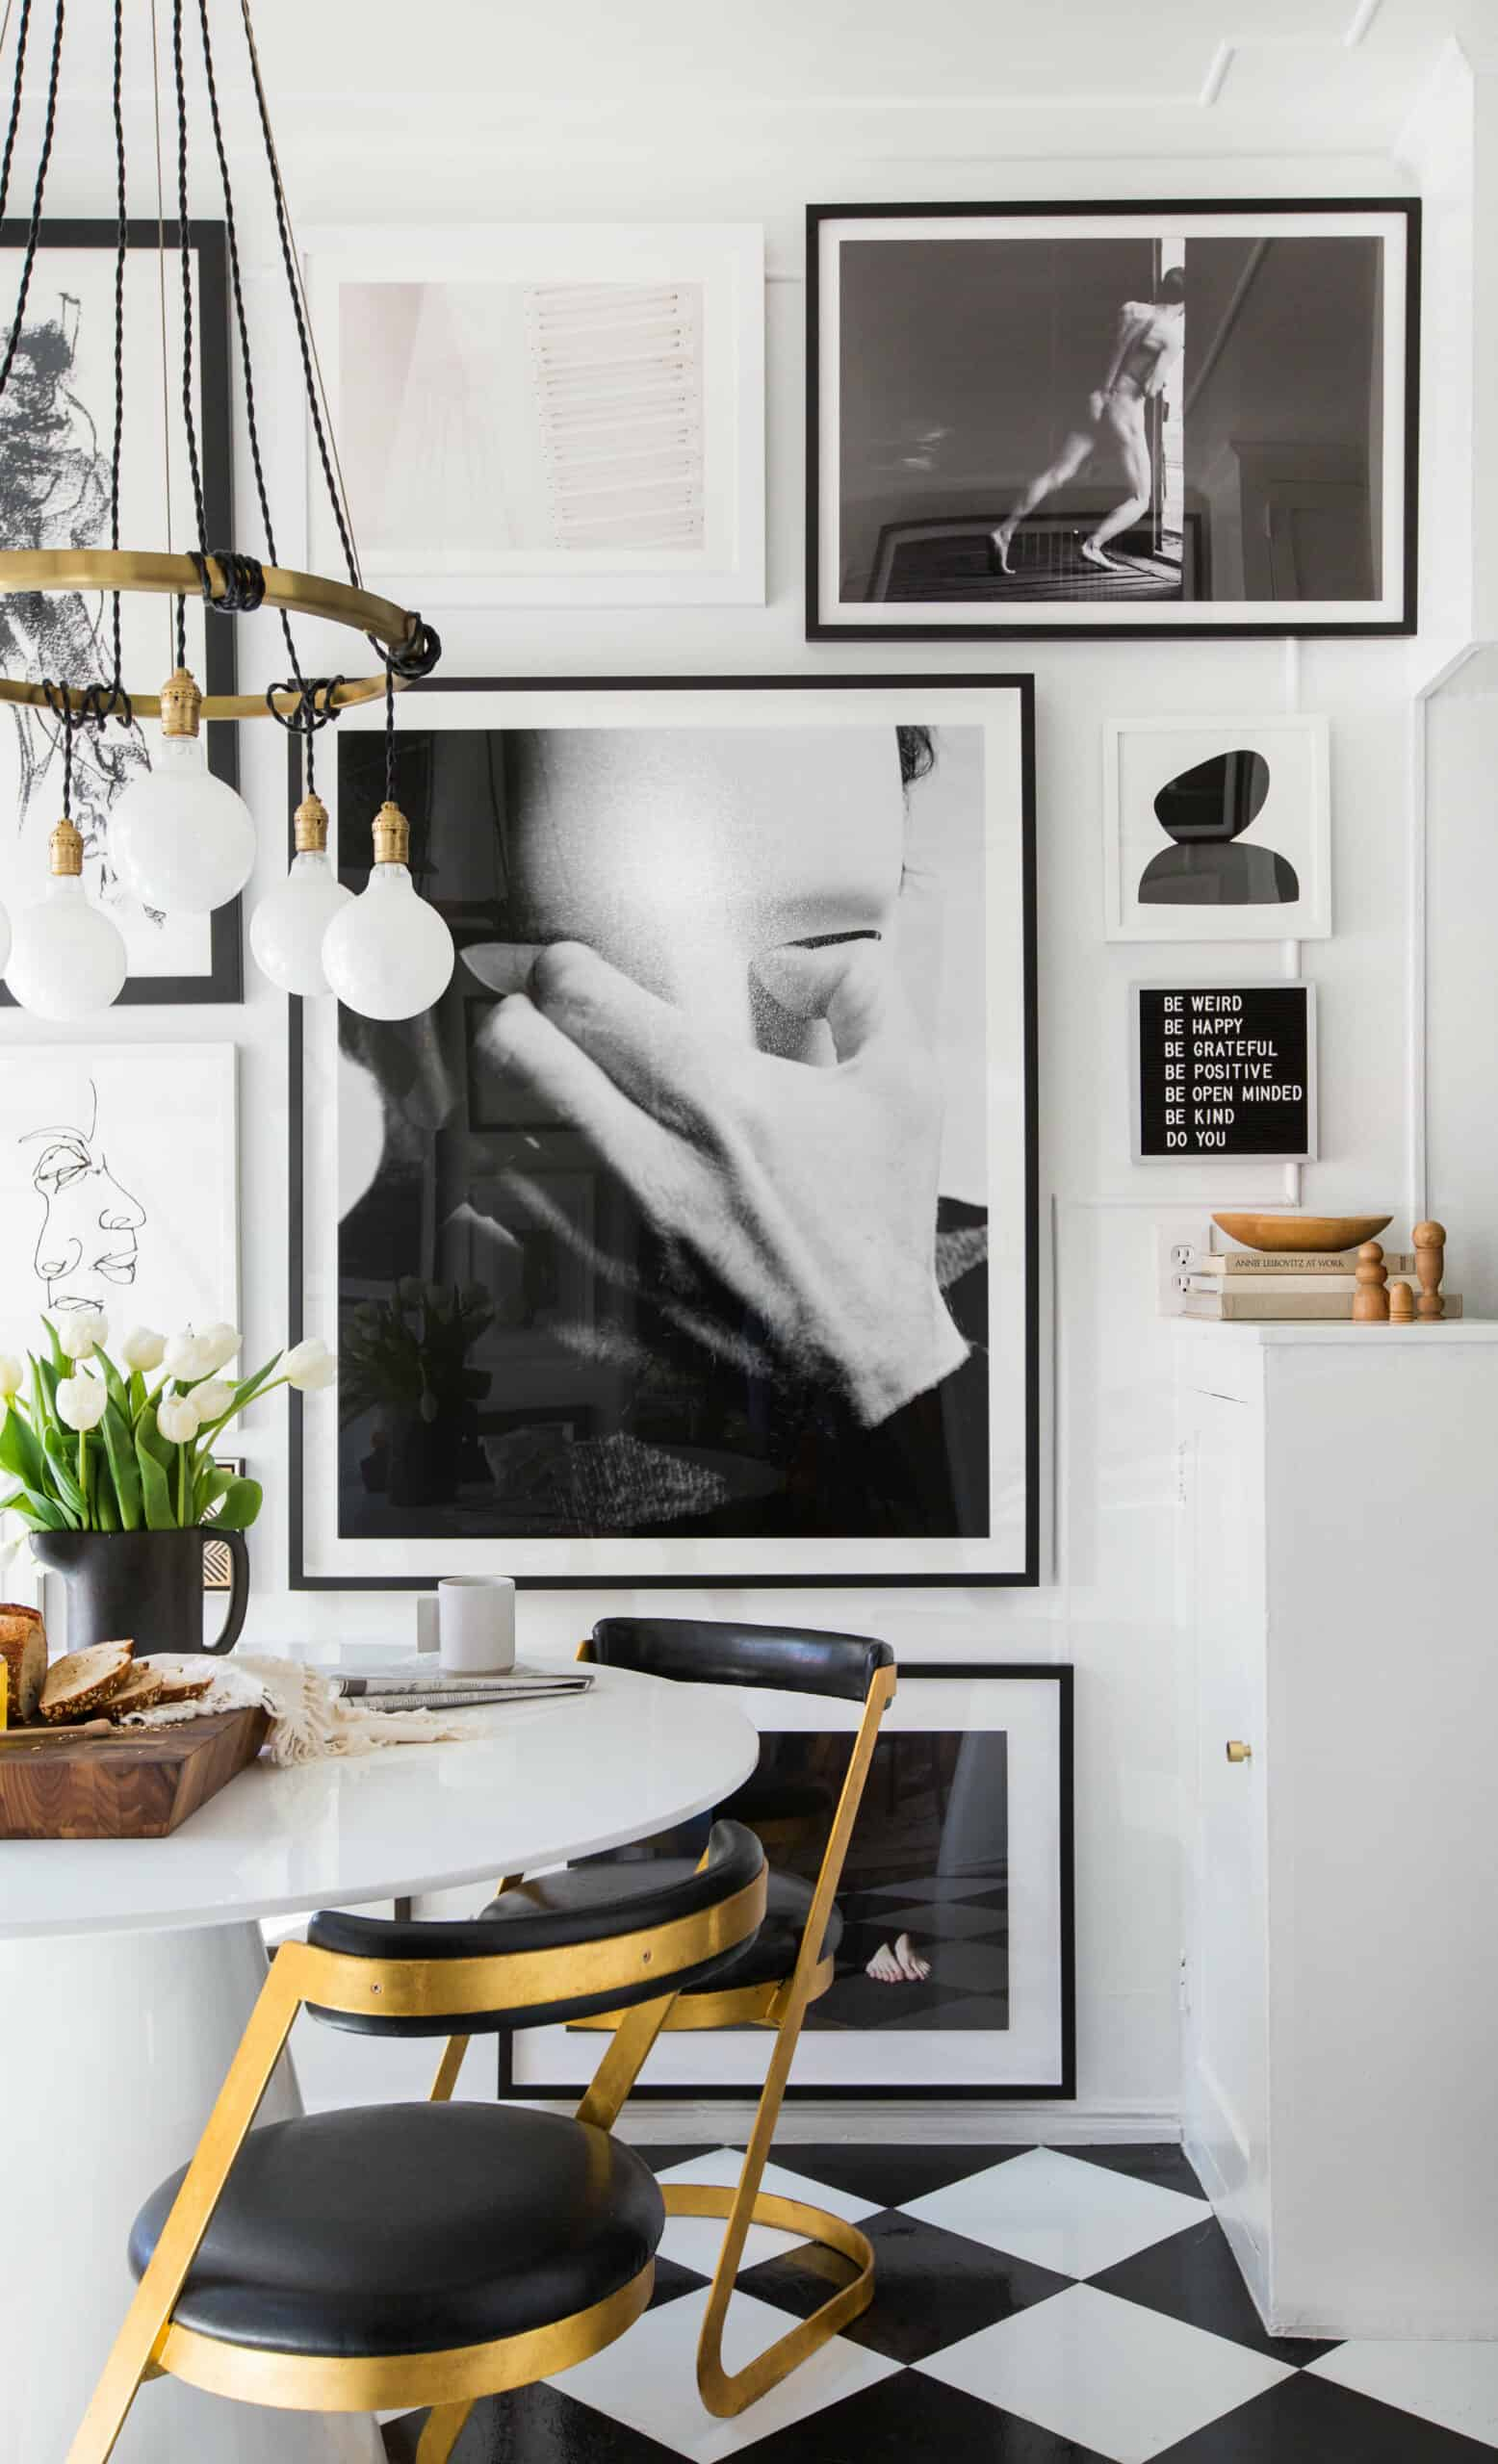 art pieces in kitchen scaled